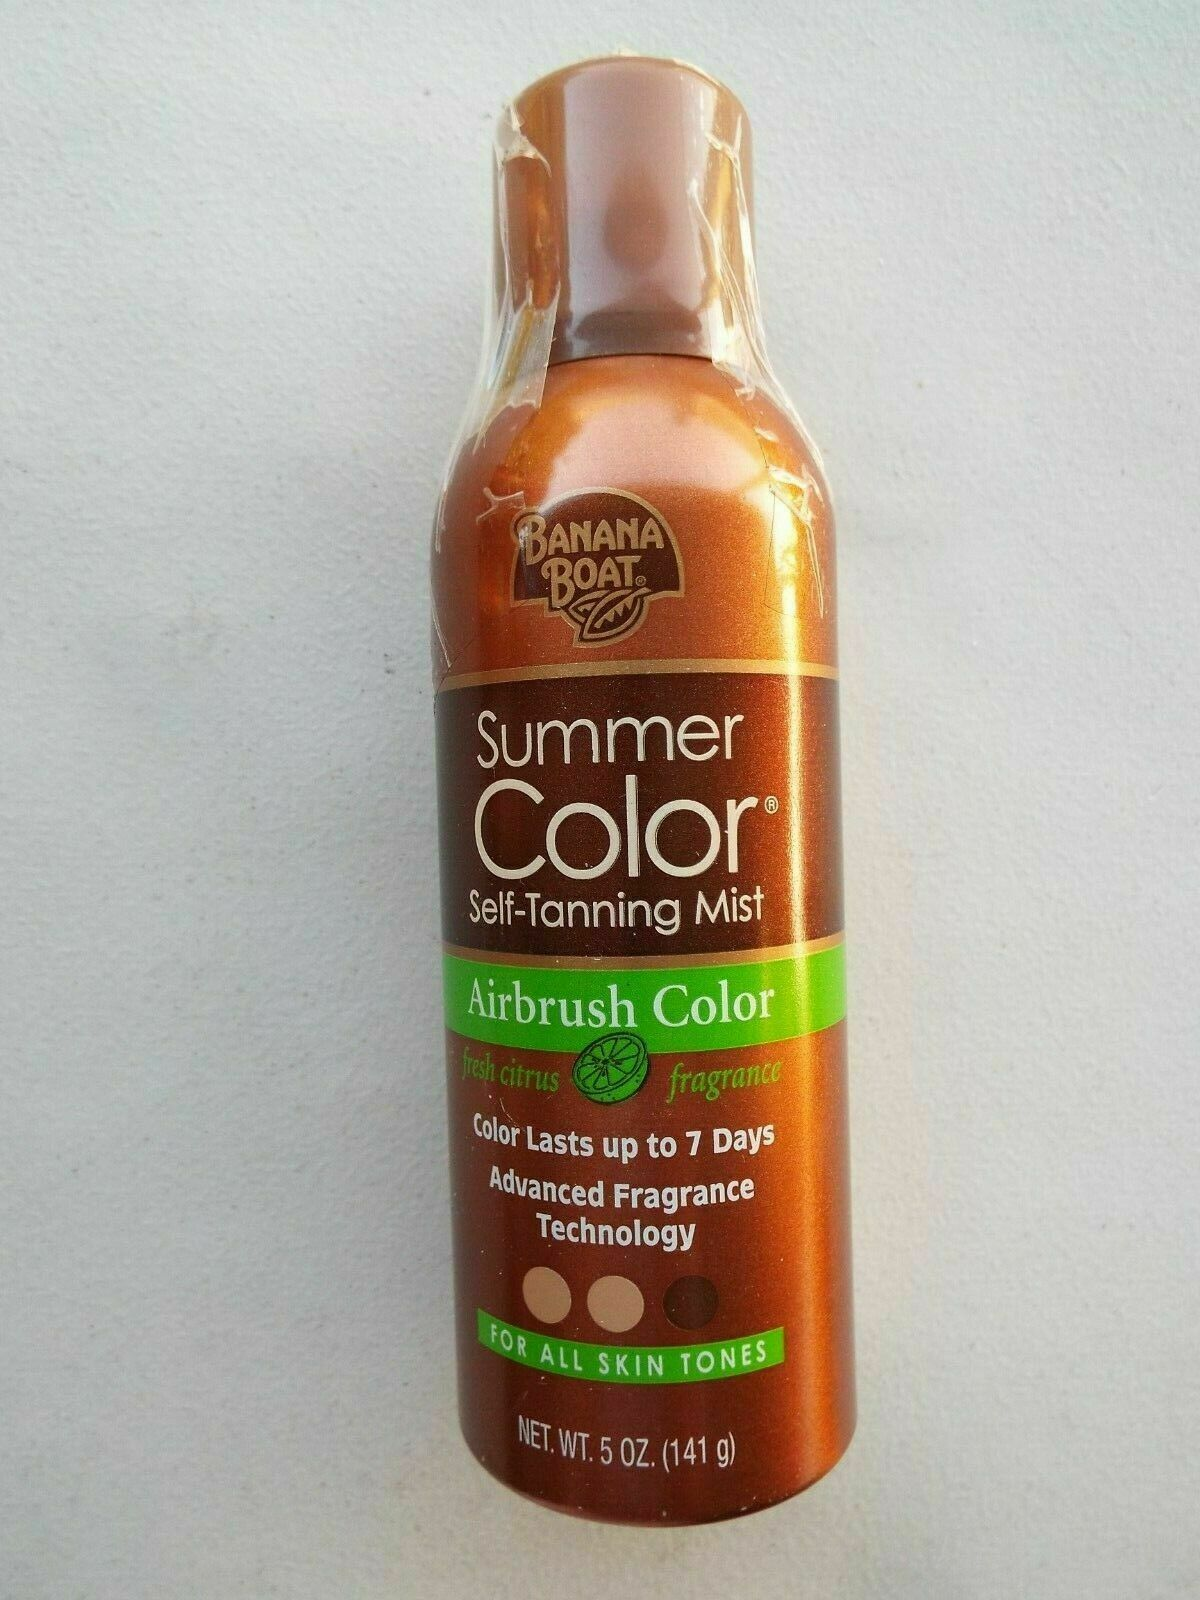 Banana Boat Summer Color Self Tanning Mist: 5 OZ